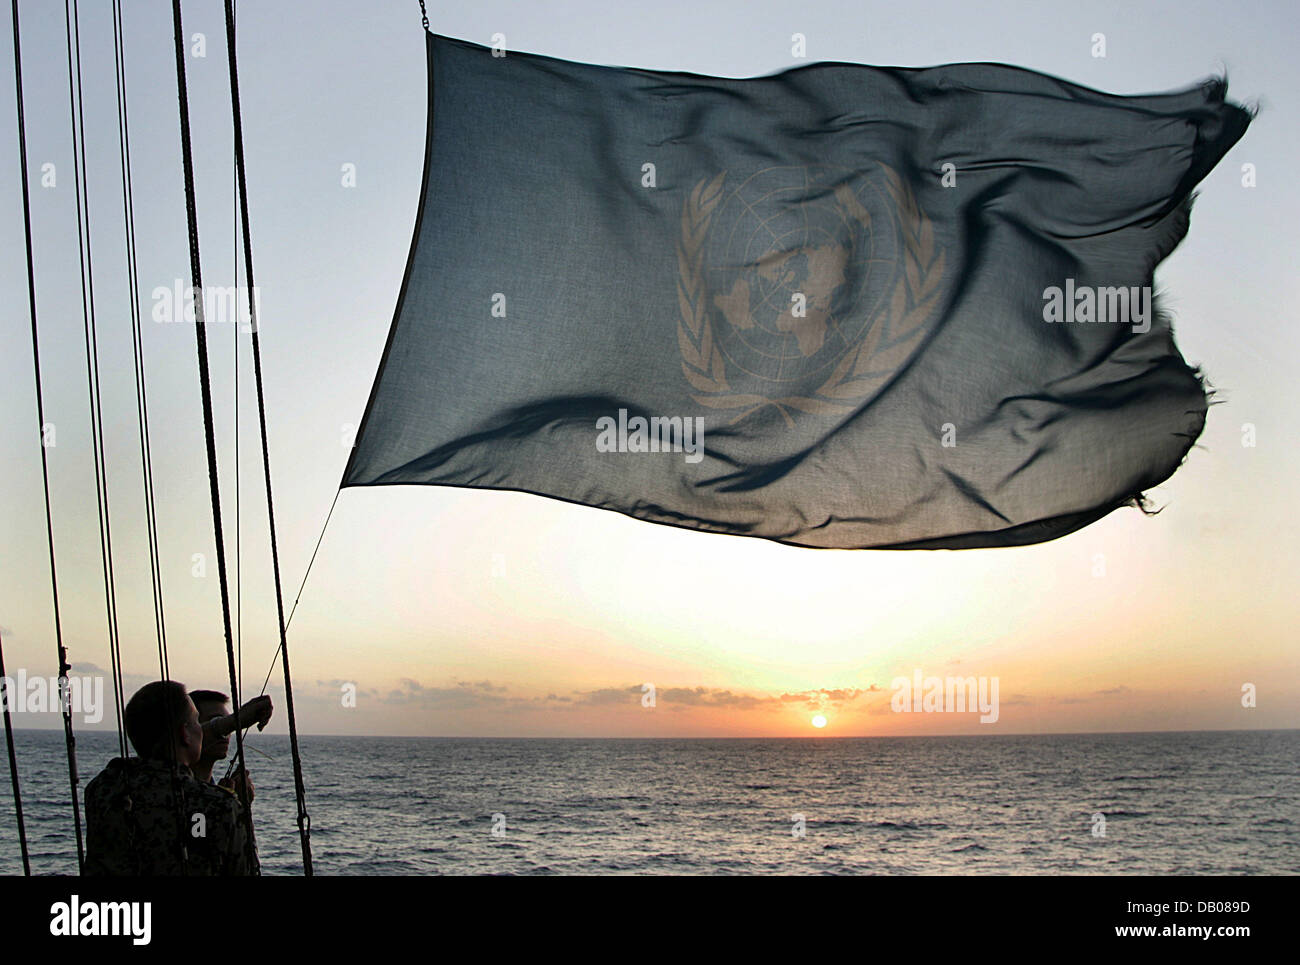 German Navy soldiers fly the flag on frigate 'Schleswig-Holstein' offshore the coast of Lebanon, 30 May - Stock Image